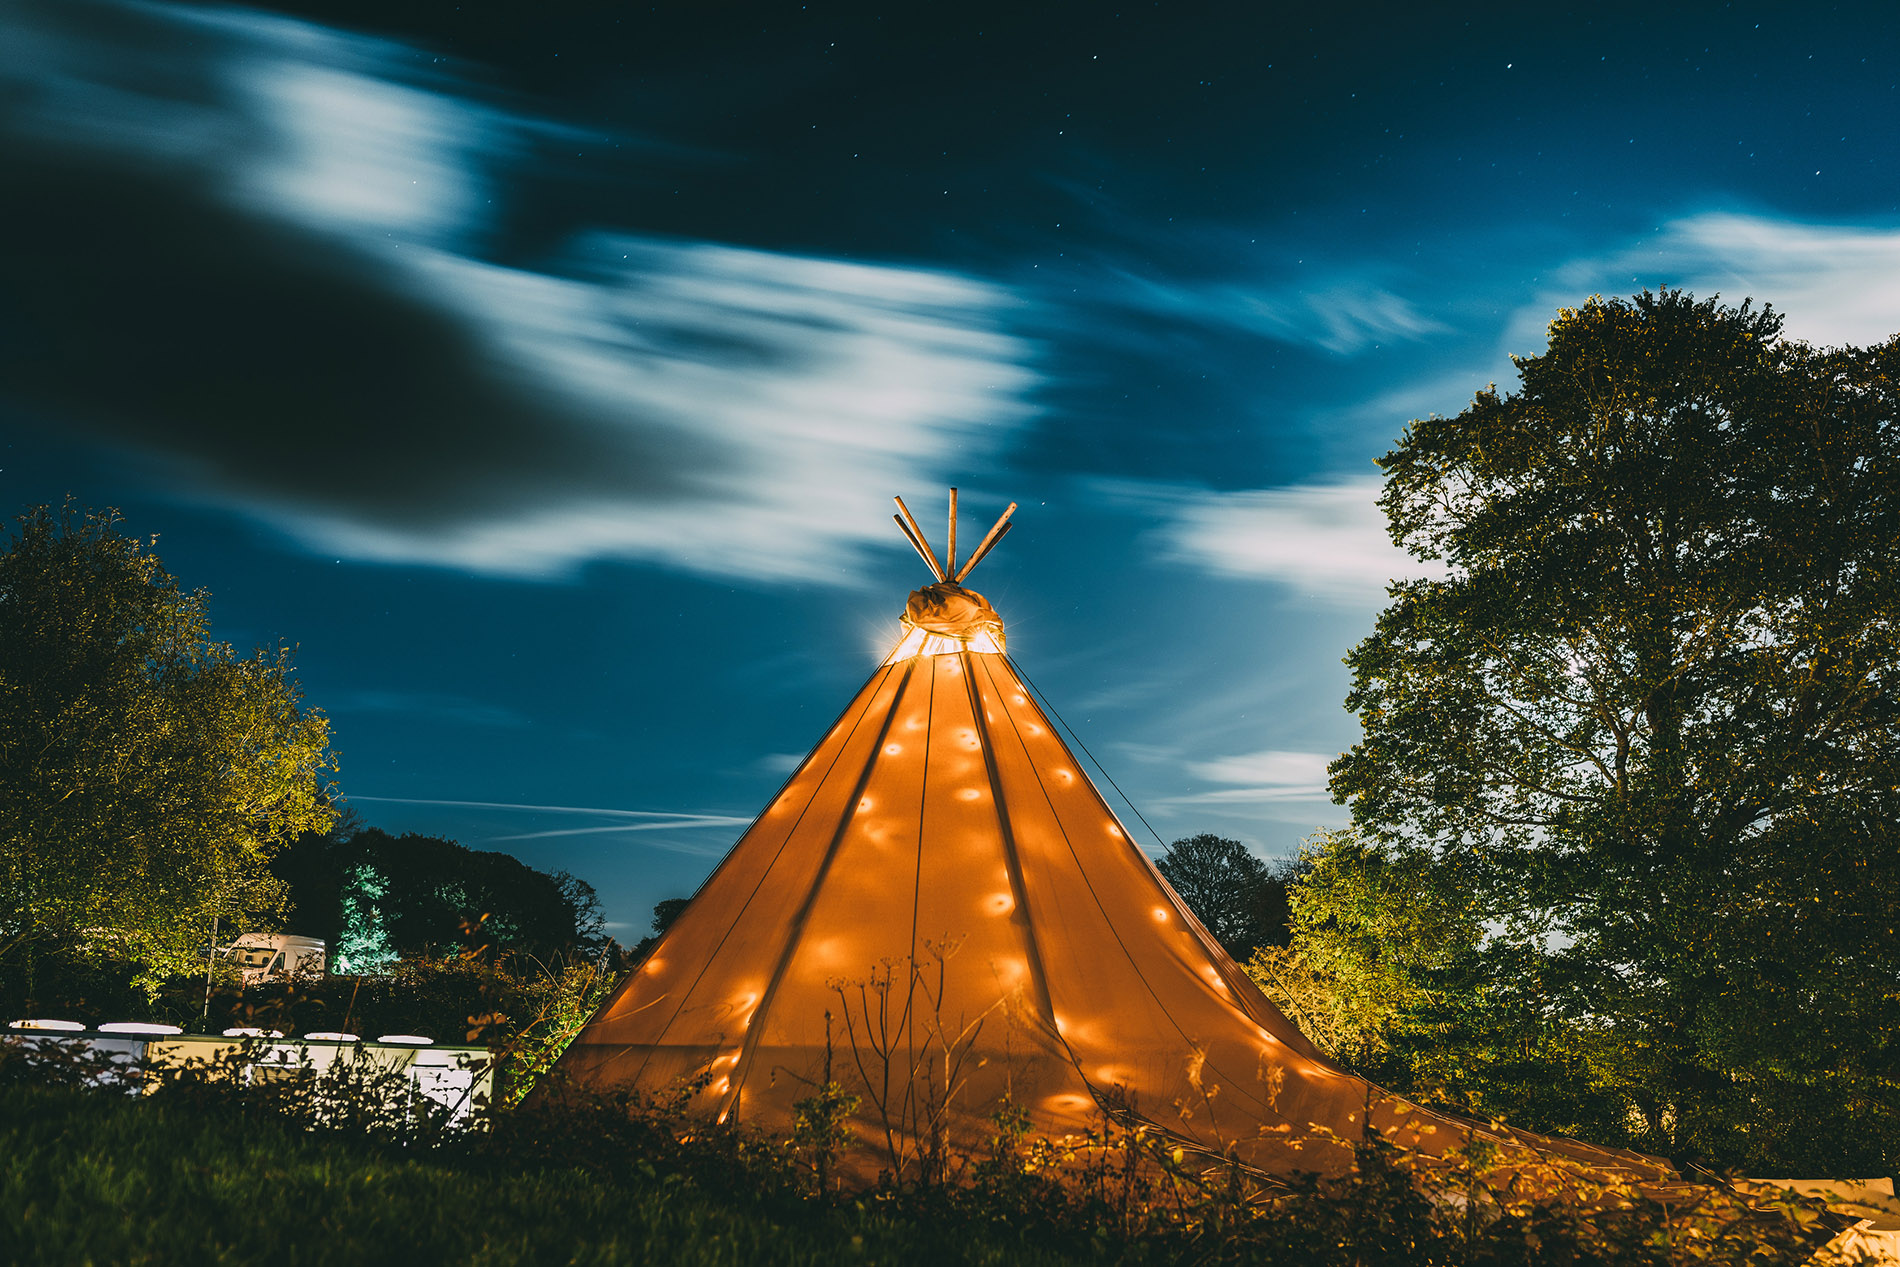 tipi exterior with lighting